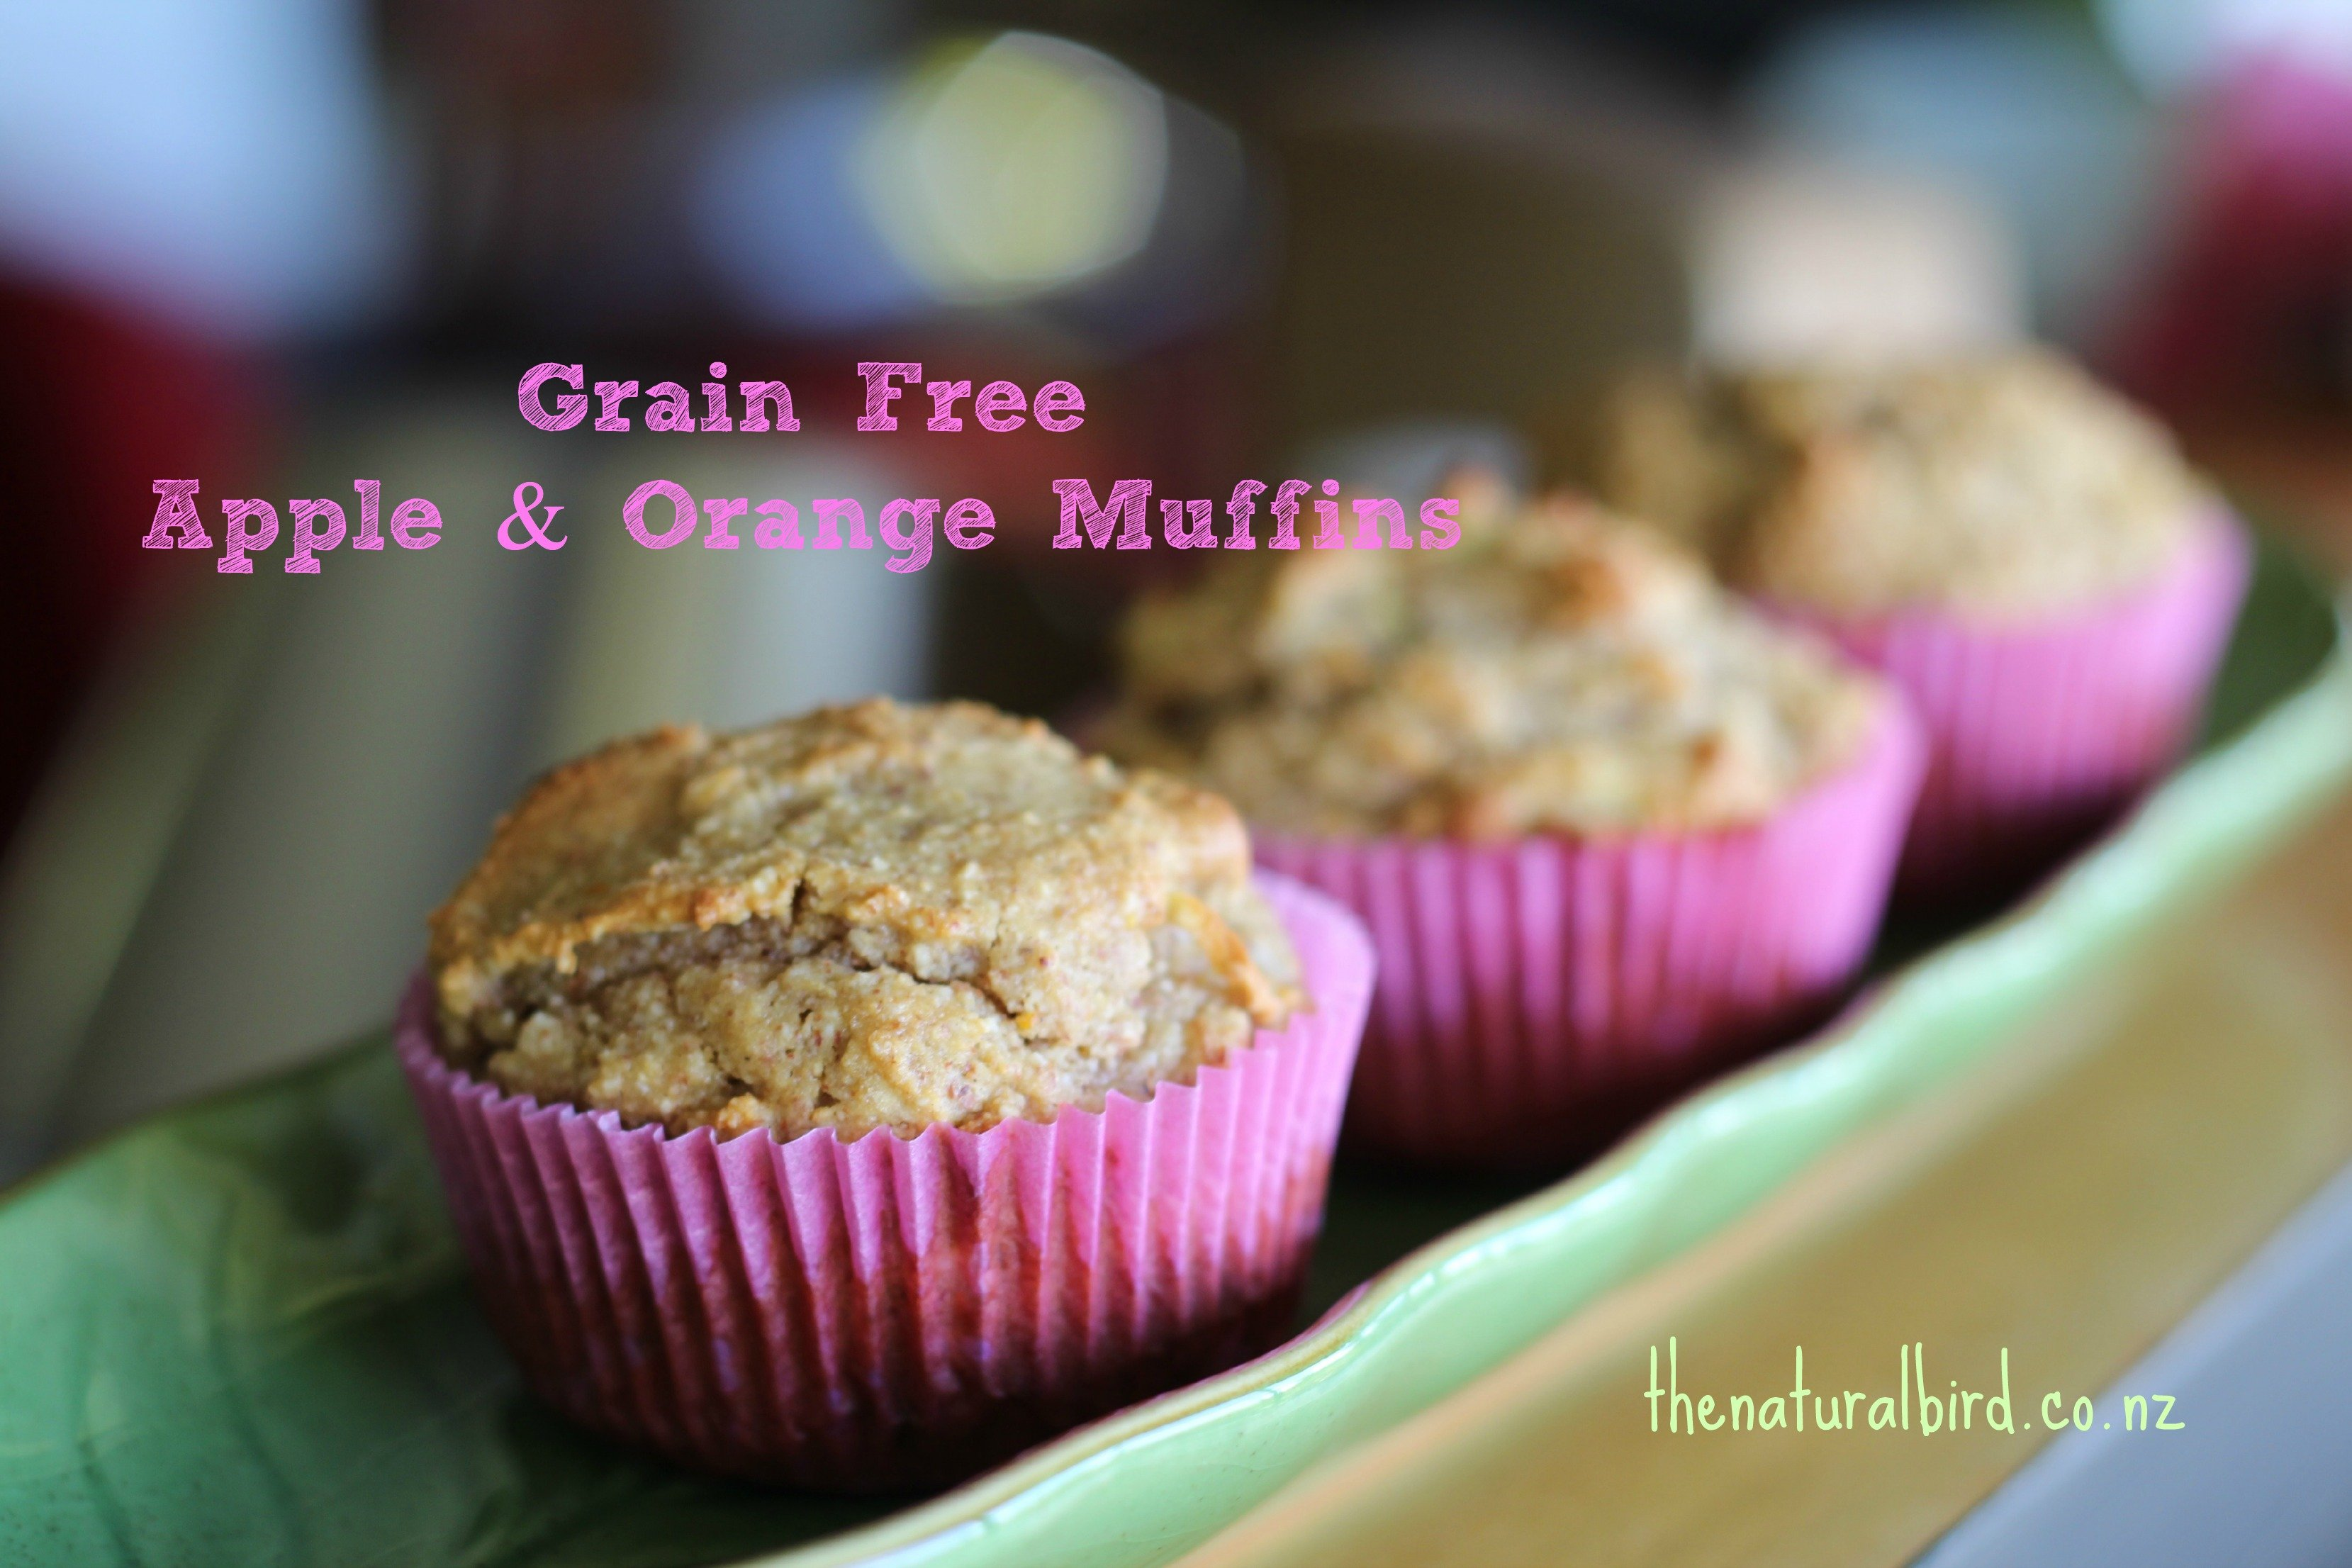 Apple & Orange Muffins